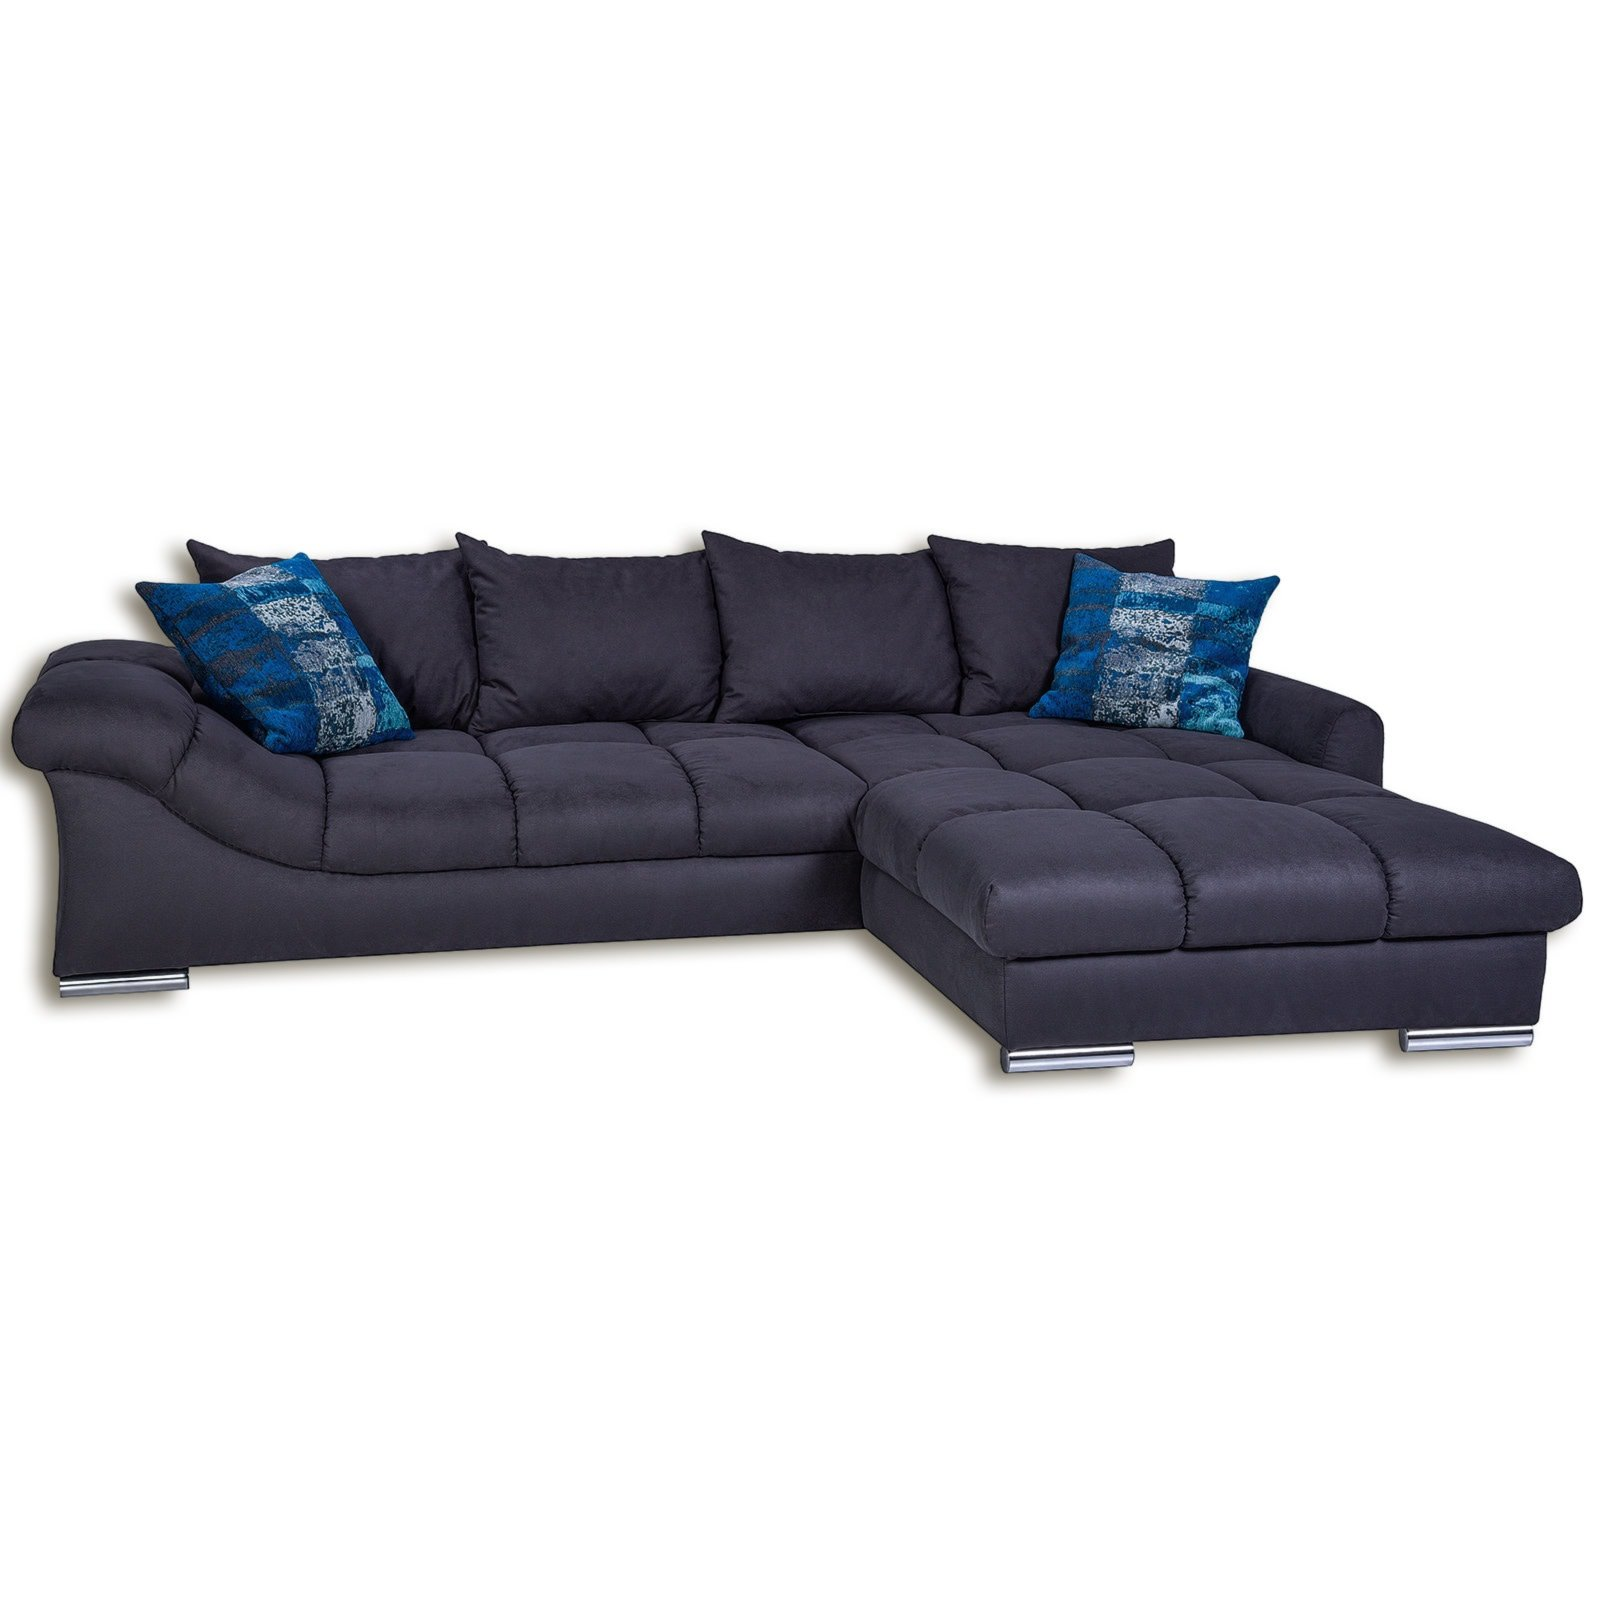 ecksofa anthrazit inklusive kissen ebay. Black Bedroom Furniture Sets. Home Design Ideas